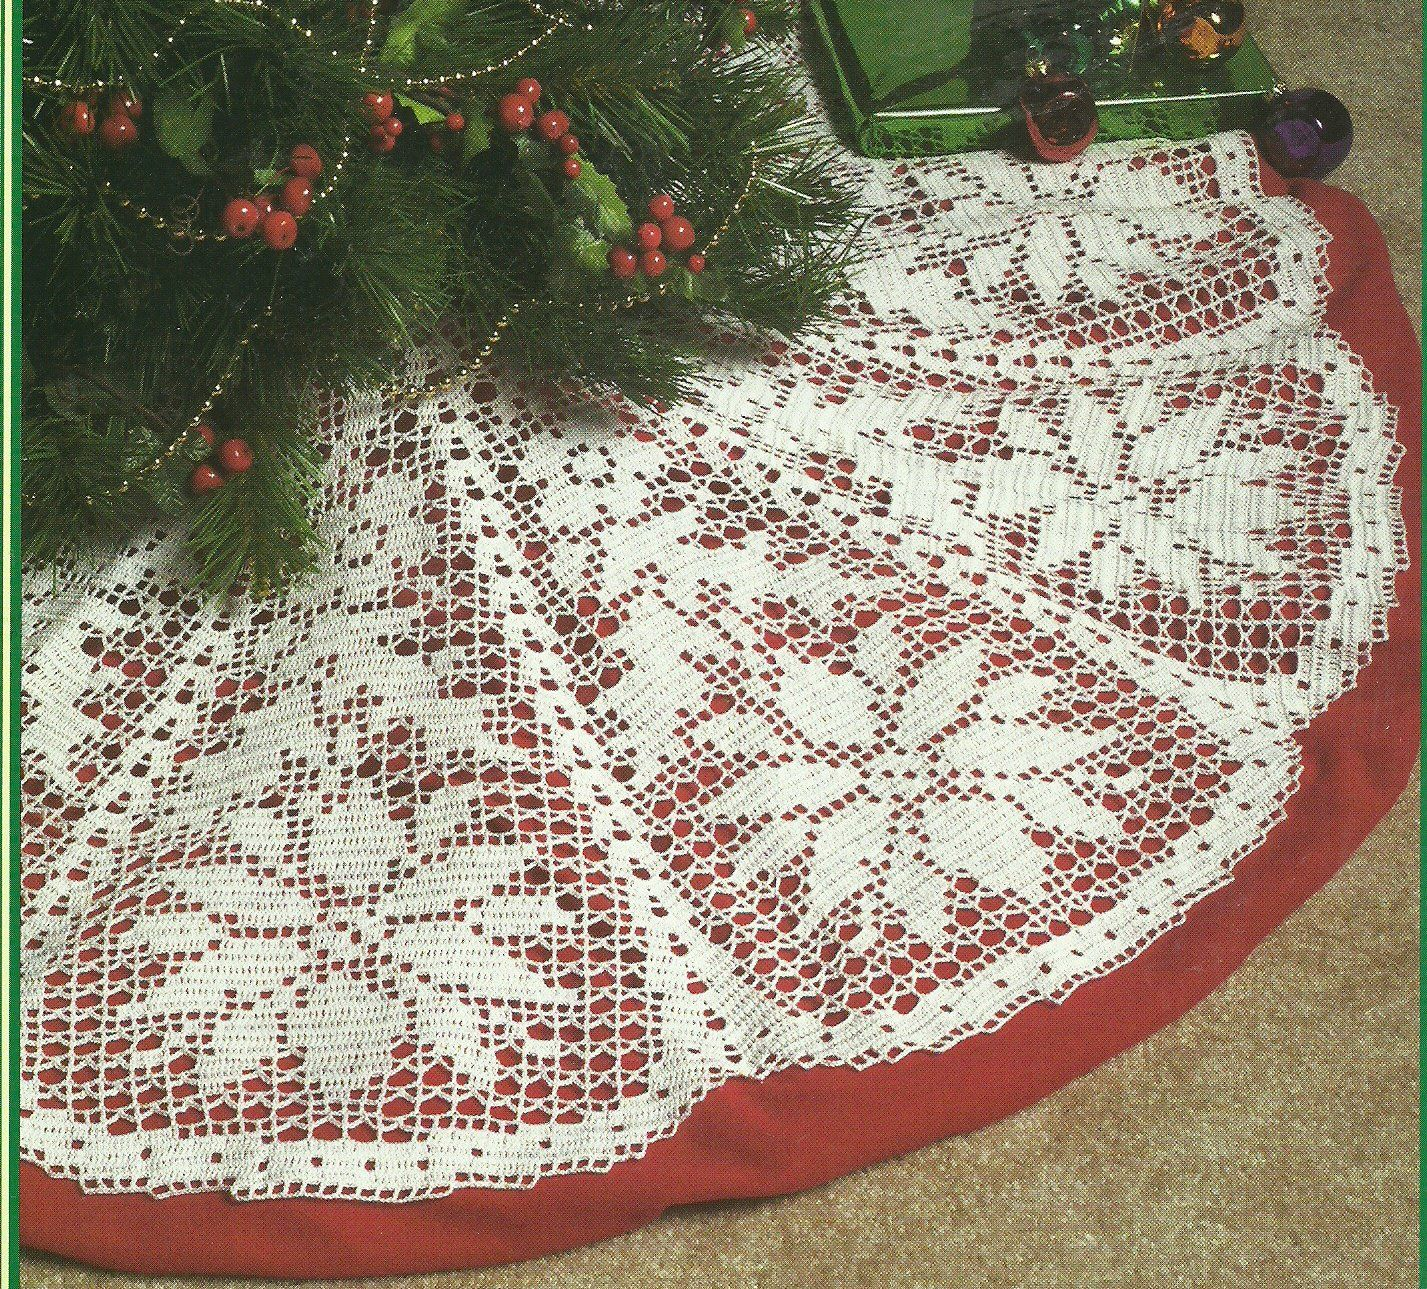 Whitechristmascollection poinsettiatreeskirt filetcrochet poinsettia christmas tree skirt crochet pattern in filet crochet pinning for tanya bankloansurffo Gallery